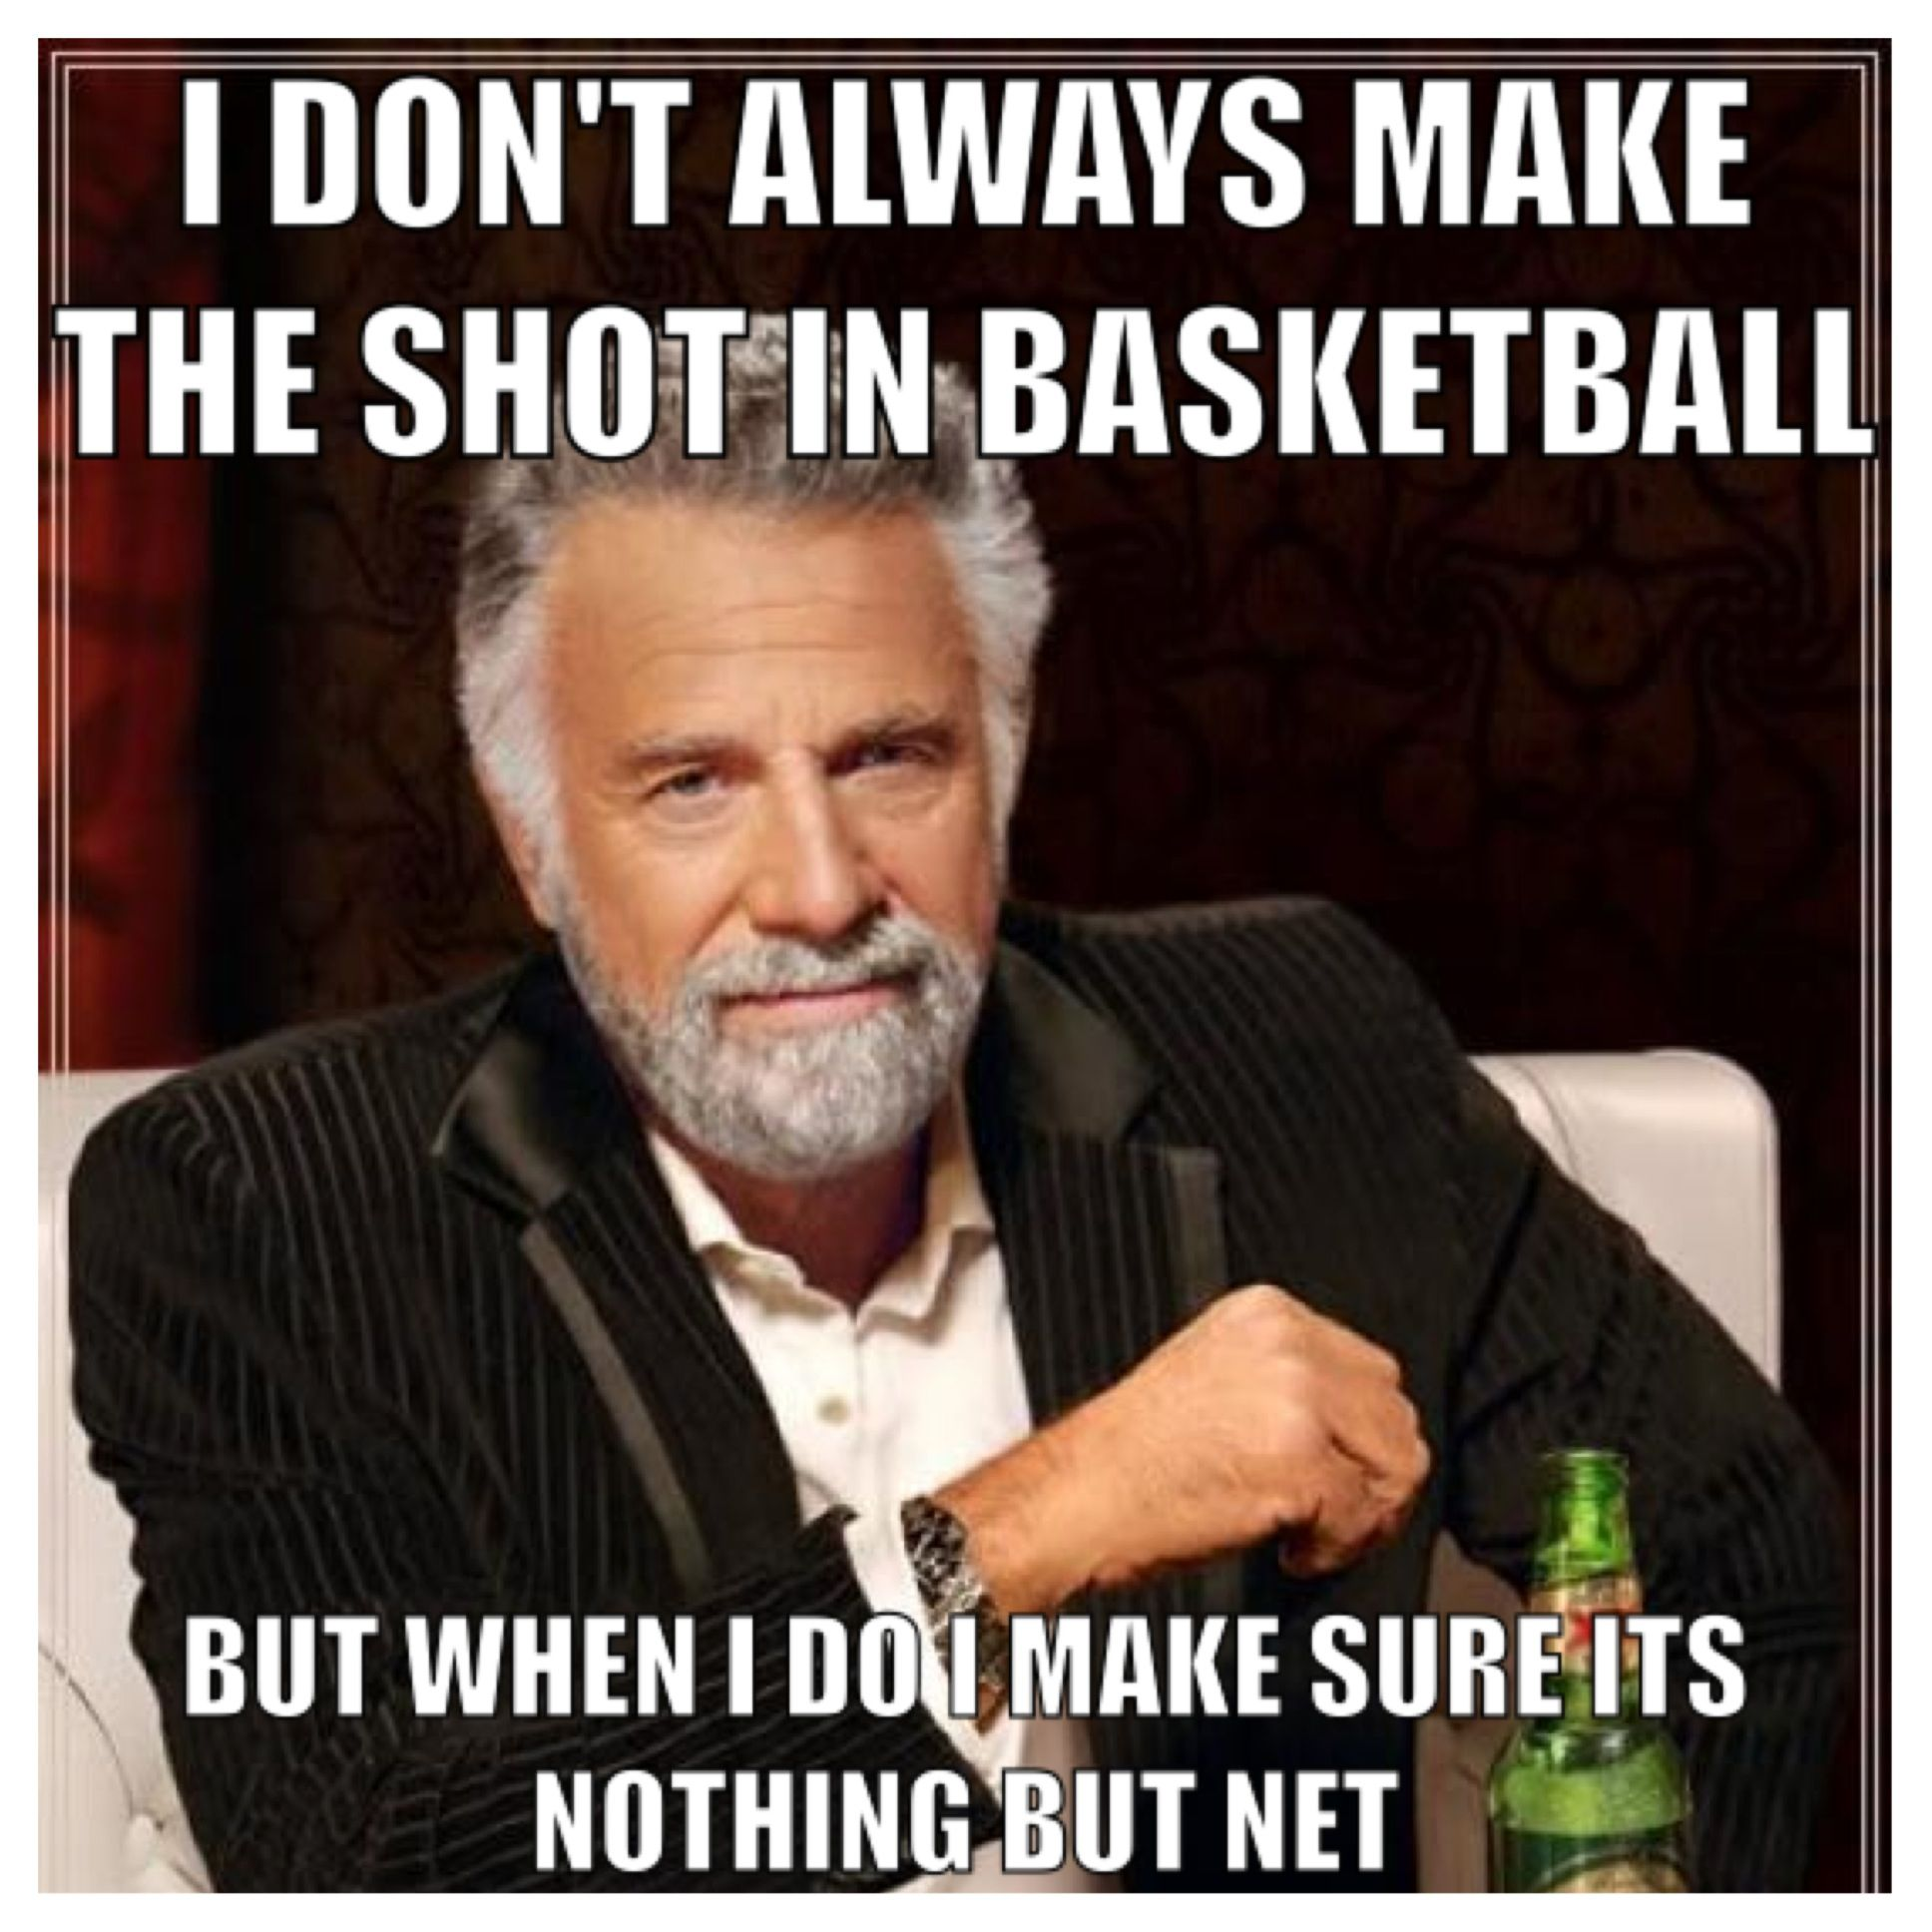 Funny Pictures Of Nba Players With Quotes: I Don't Always But When I Do Quote Funny Basketball Quote